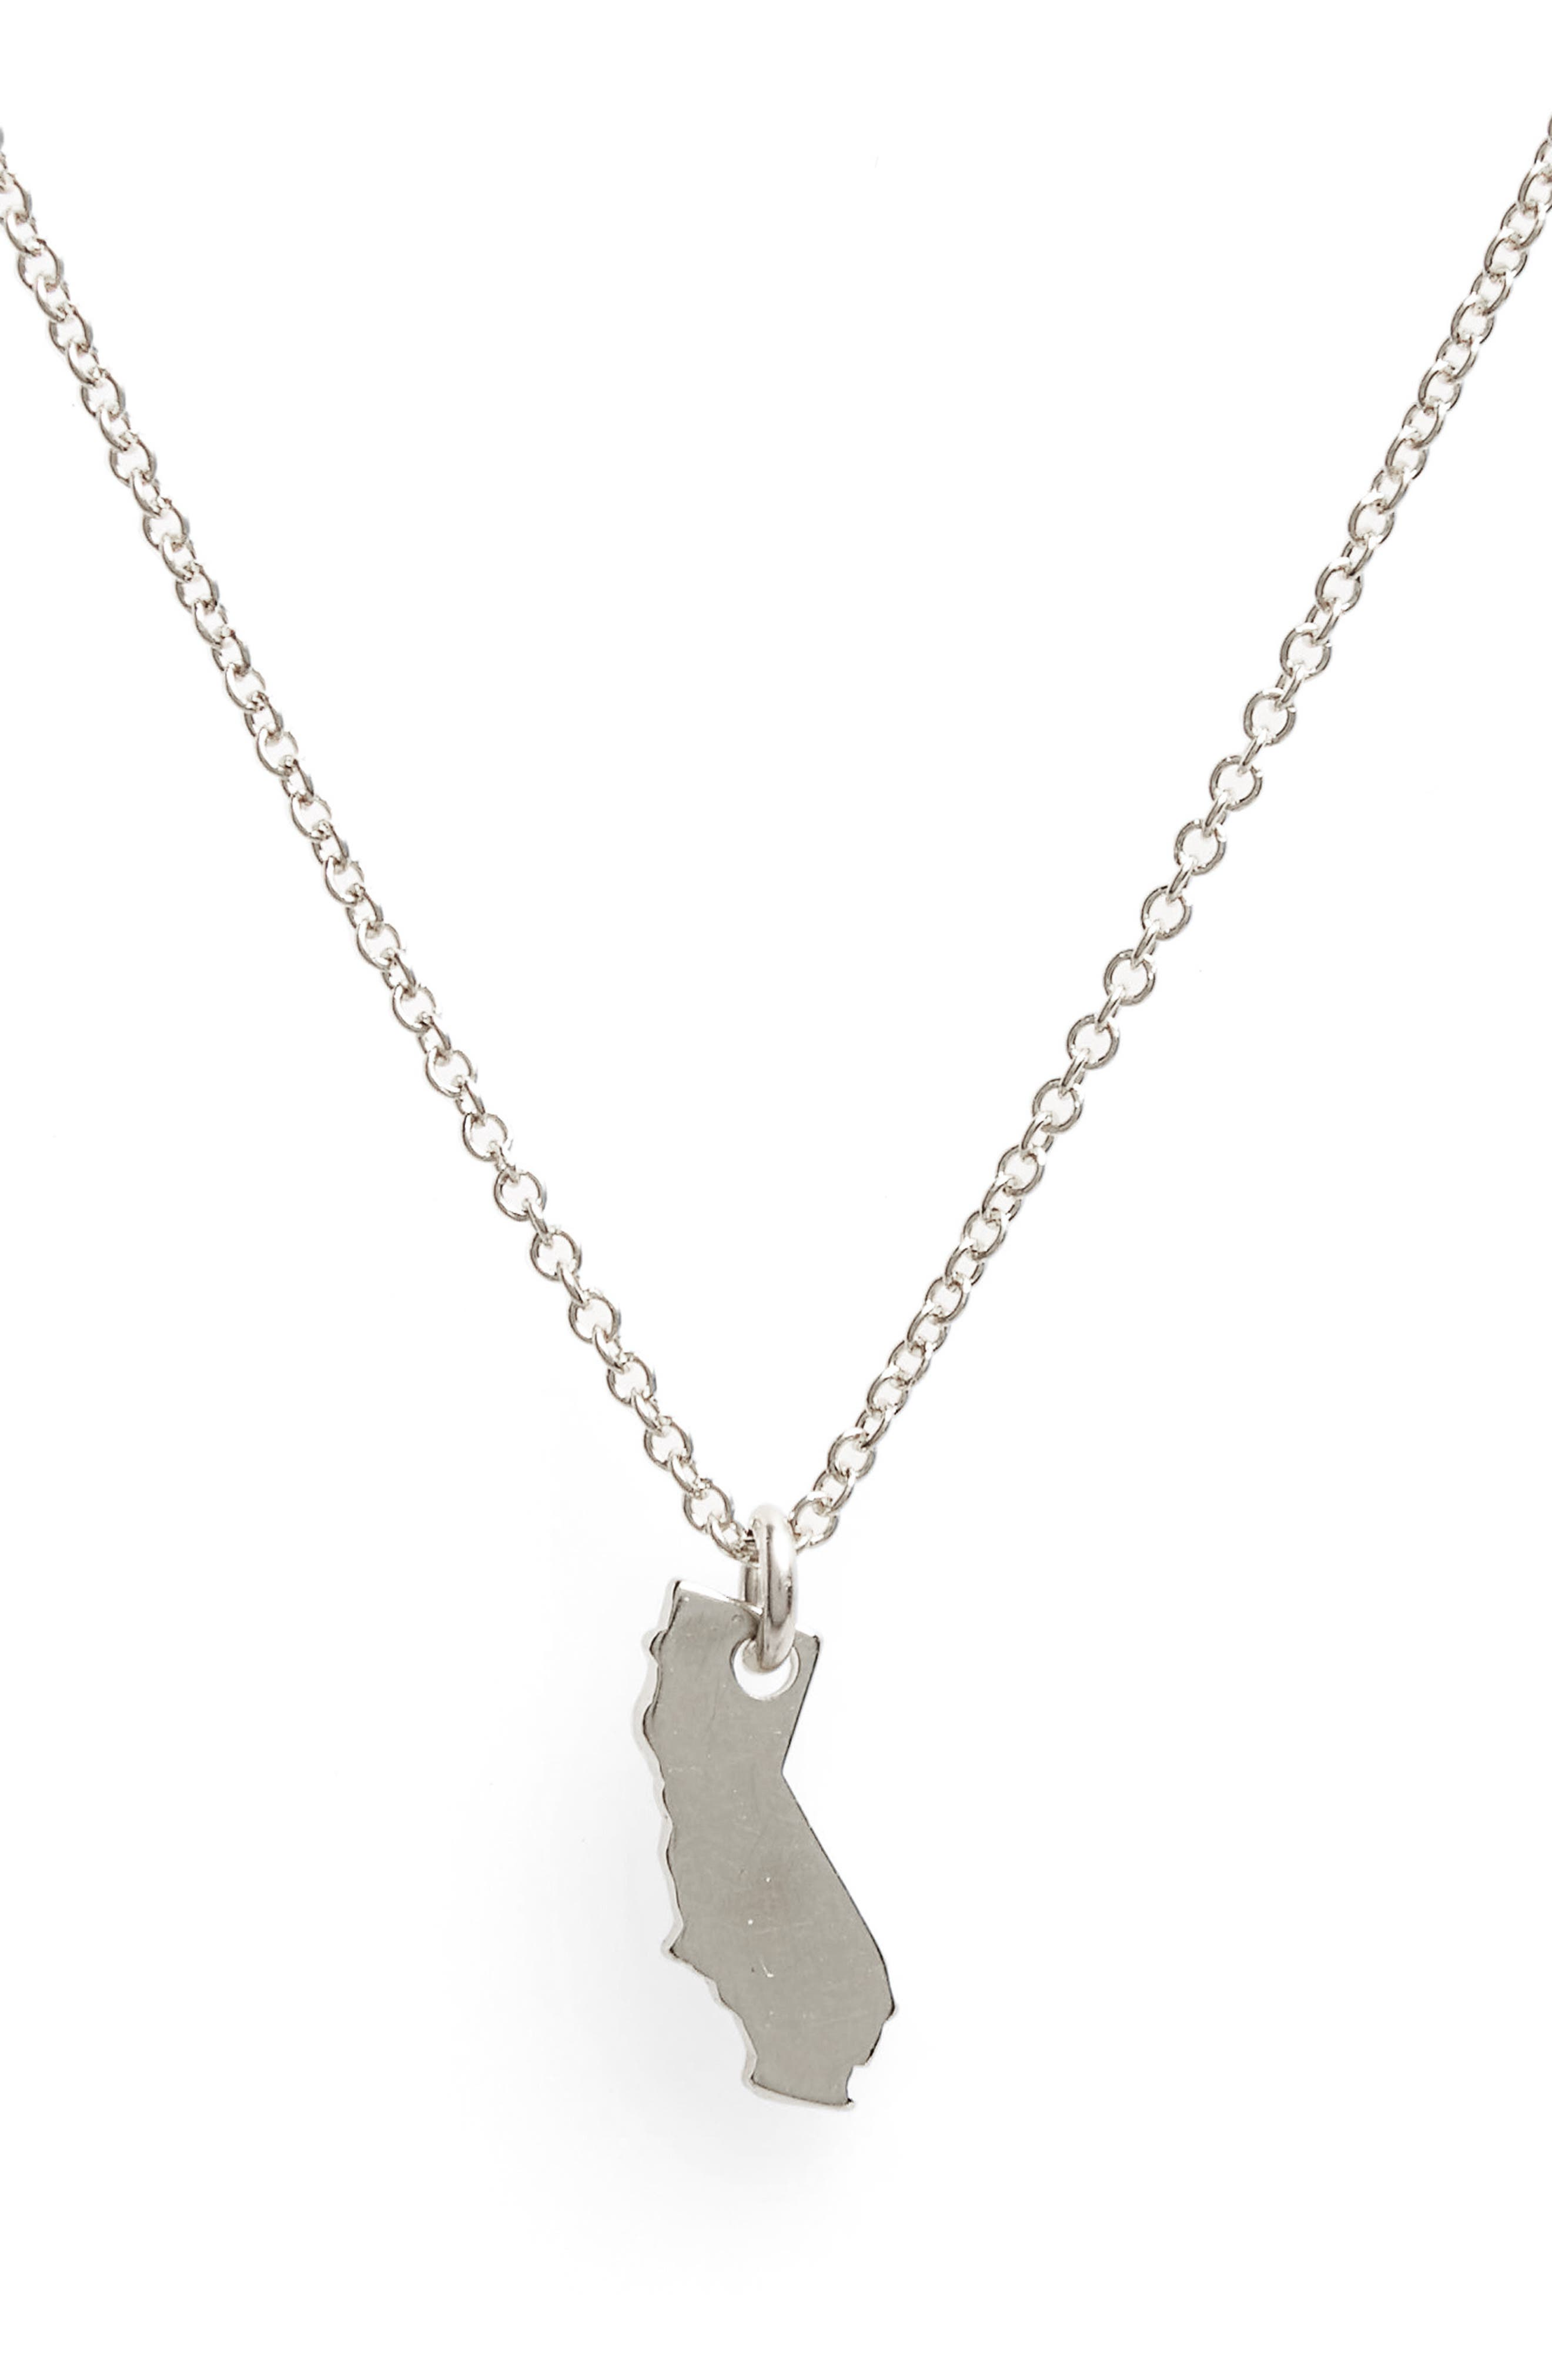 I Heart California Pendant Necklace,                             Alternate thumbnail 4, color,                             042